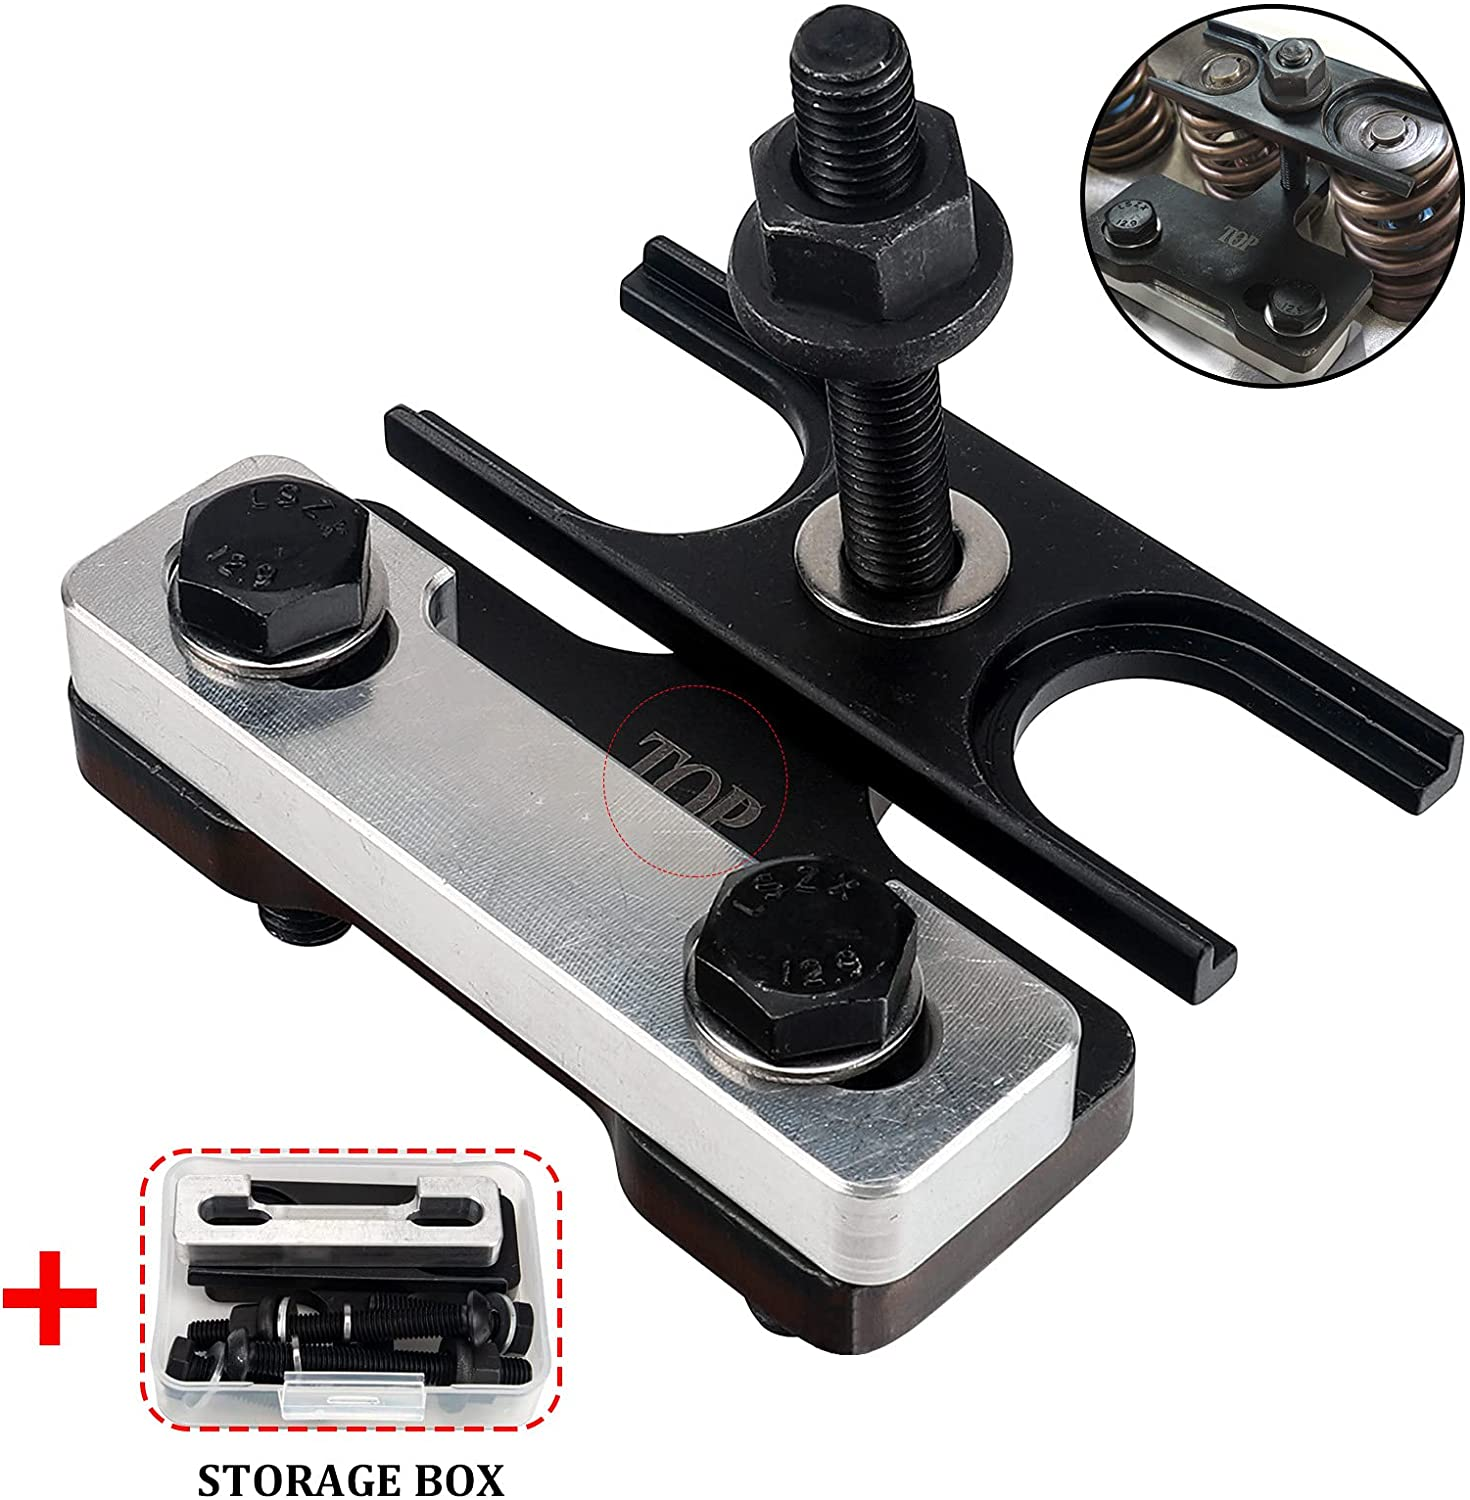 3mirrors UPGRADE Valve Spring Ranking TOP8 Compressor Financial sales sale Compatible Tool 4. with